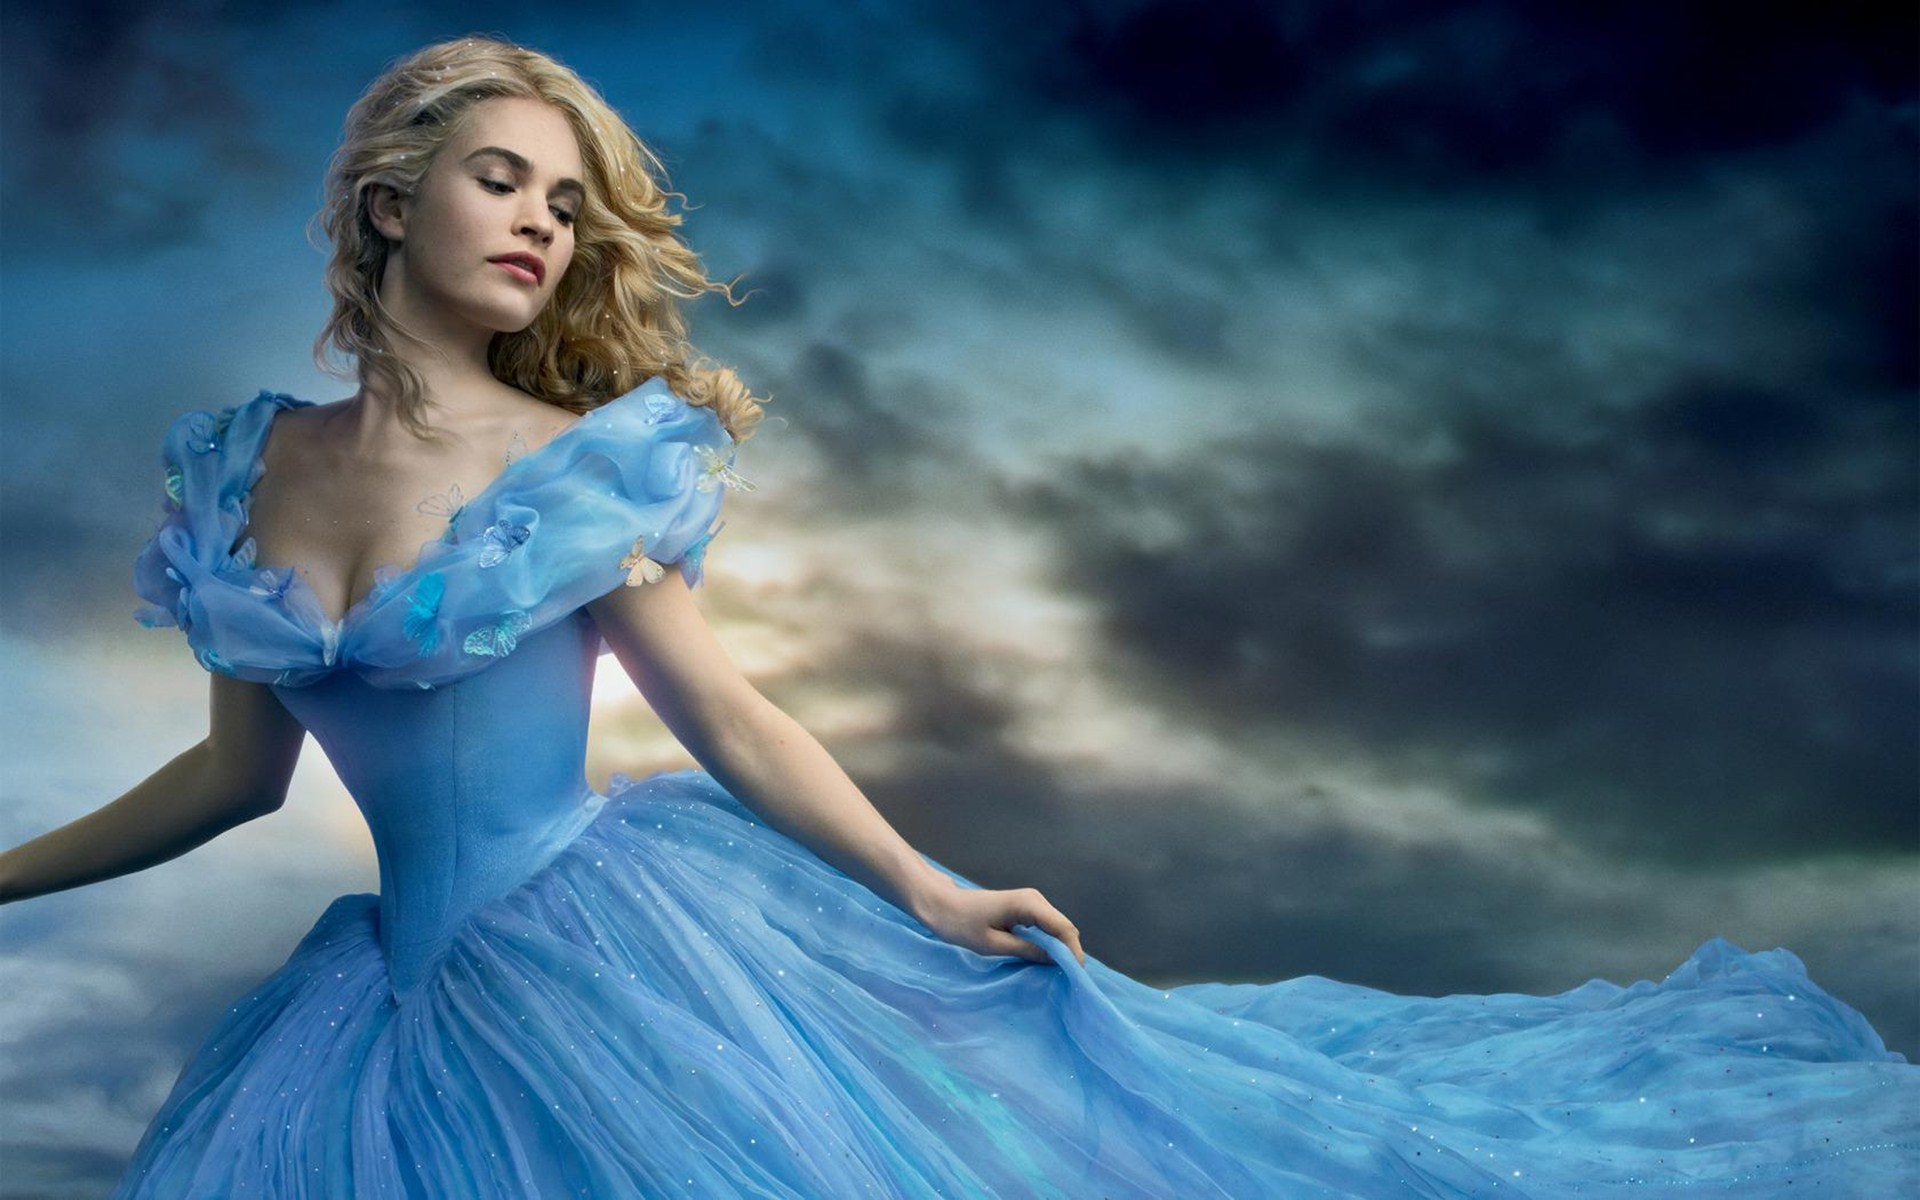 https://andradadan.com/wp-content/uploads/2015/08/Cinderella-2015-HD-Stills.jpg